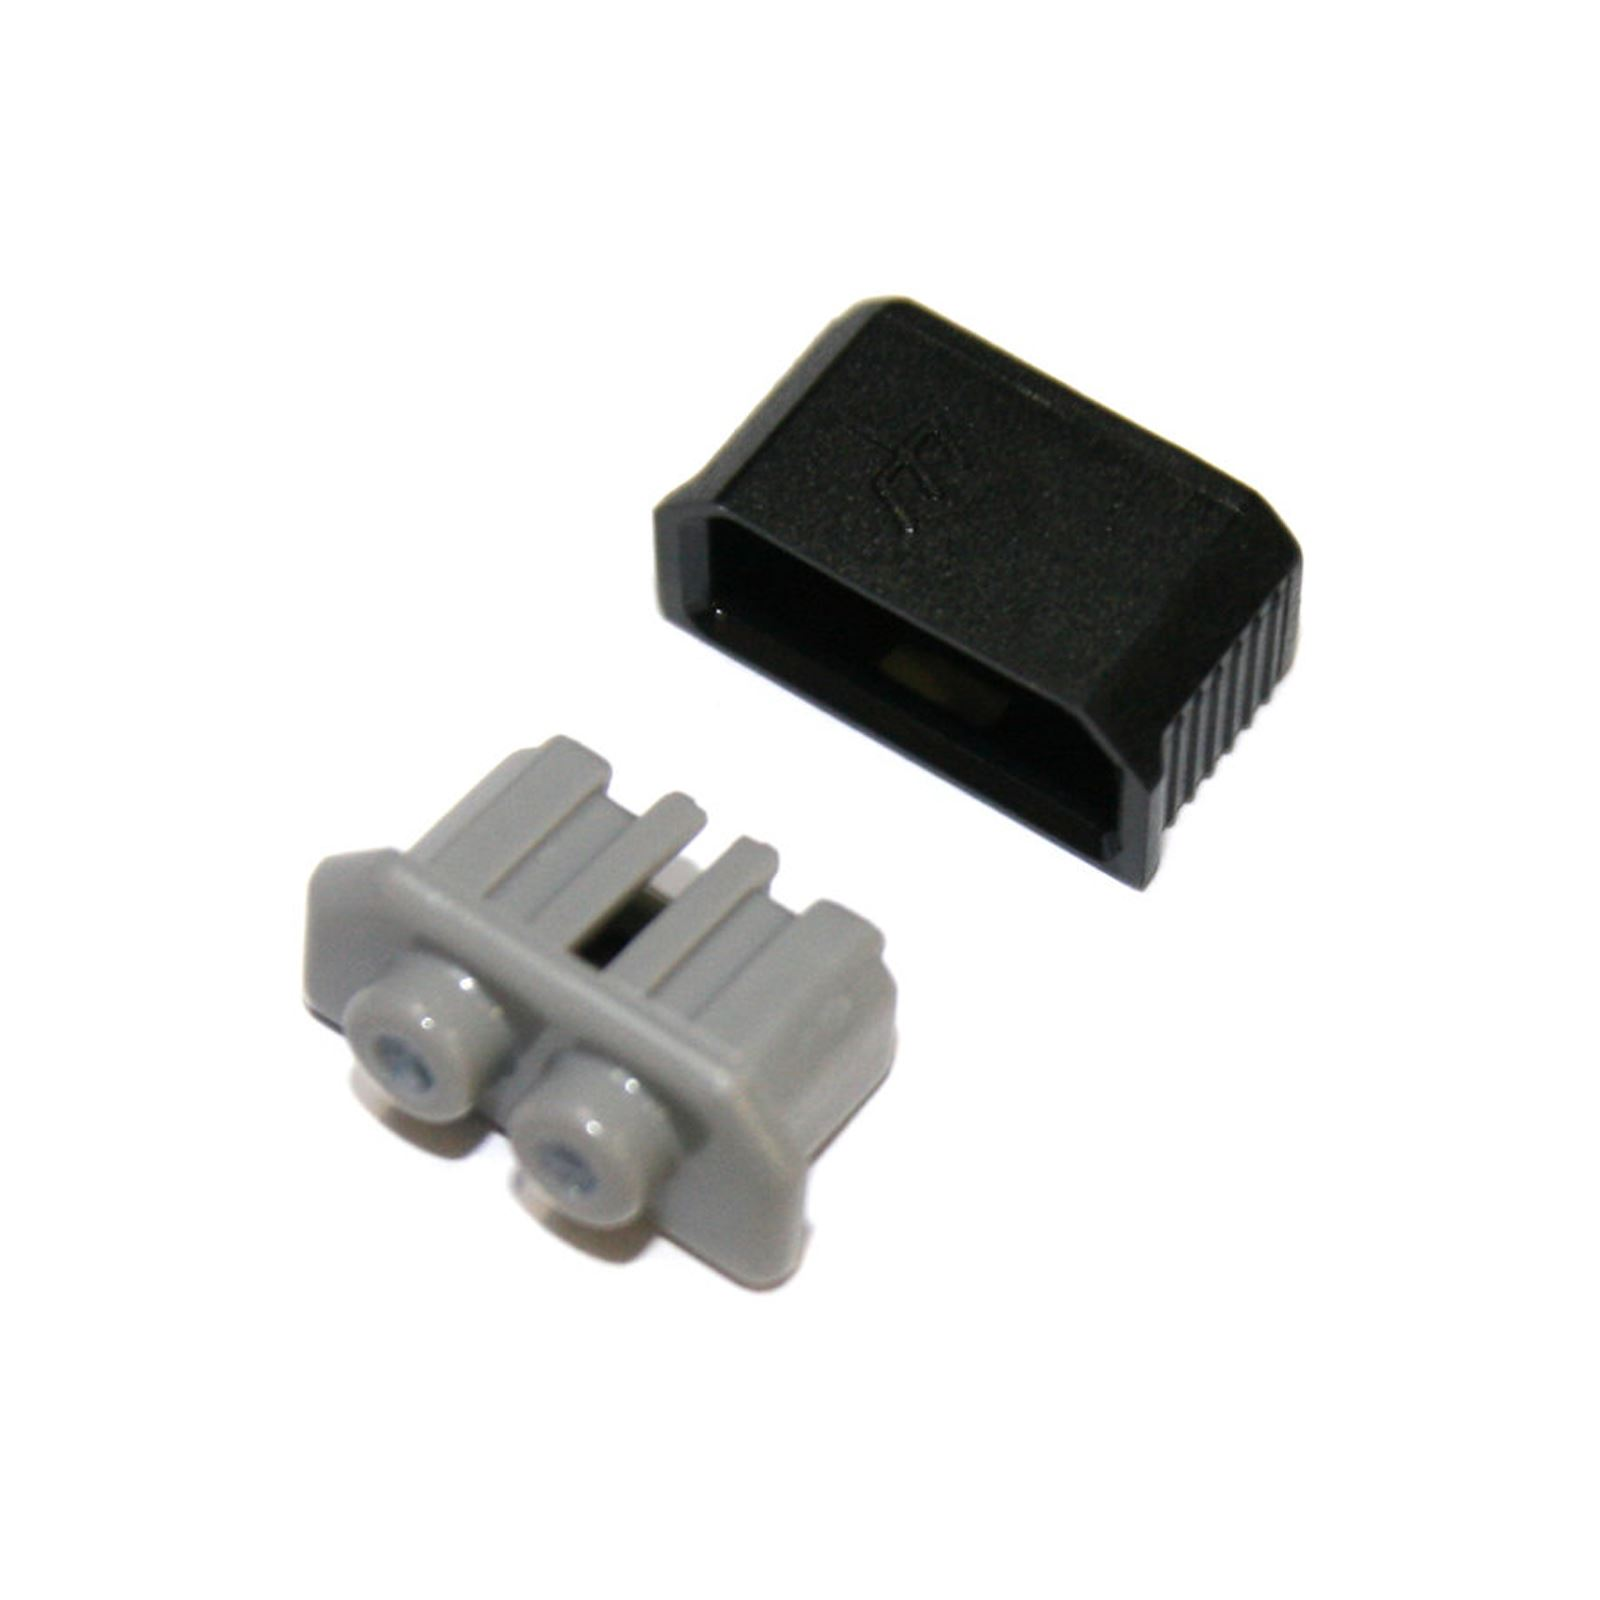 Shimano Dynamo Hub Wire Connector Cap and Cover